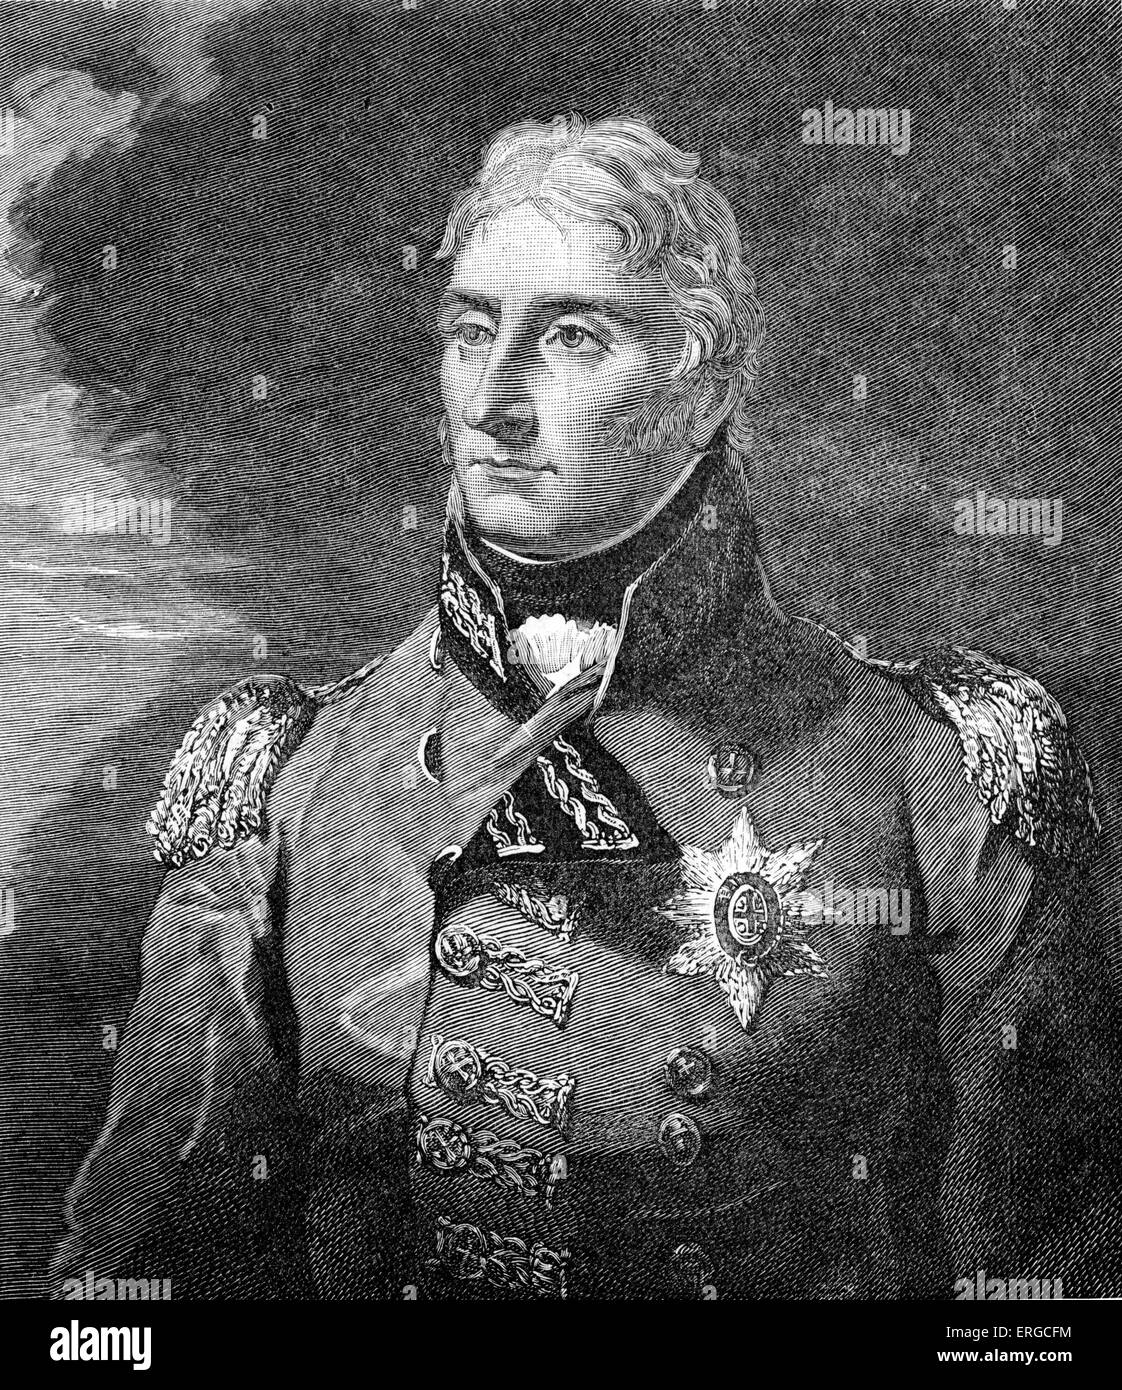 Sir John Moore - portrait. British lieutenant-general in the British Army, noted for his reforms to military training - Stock Image